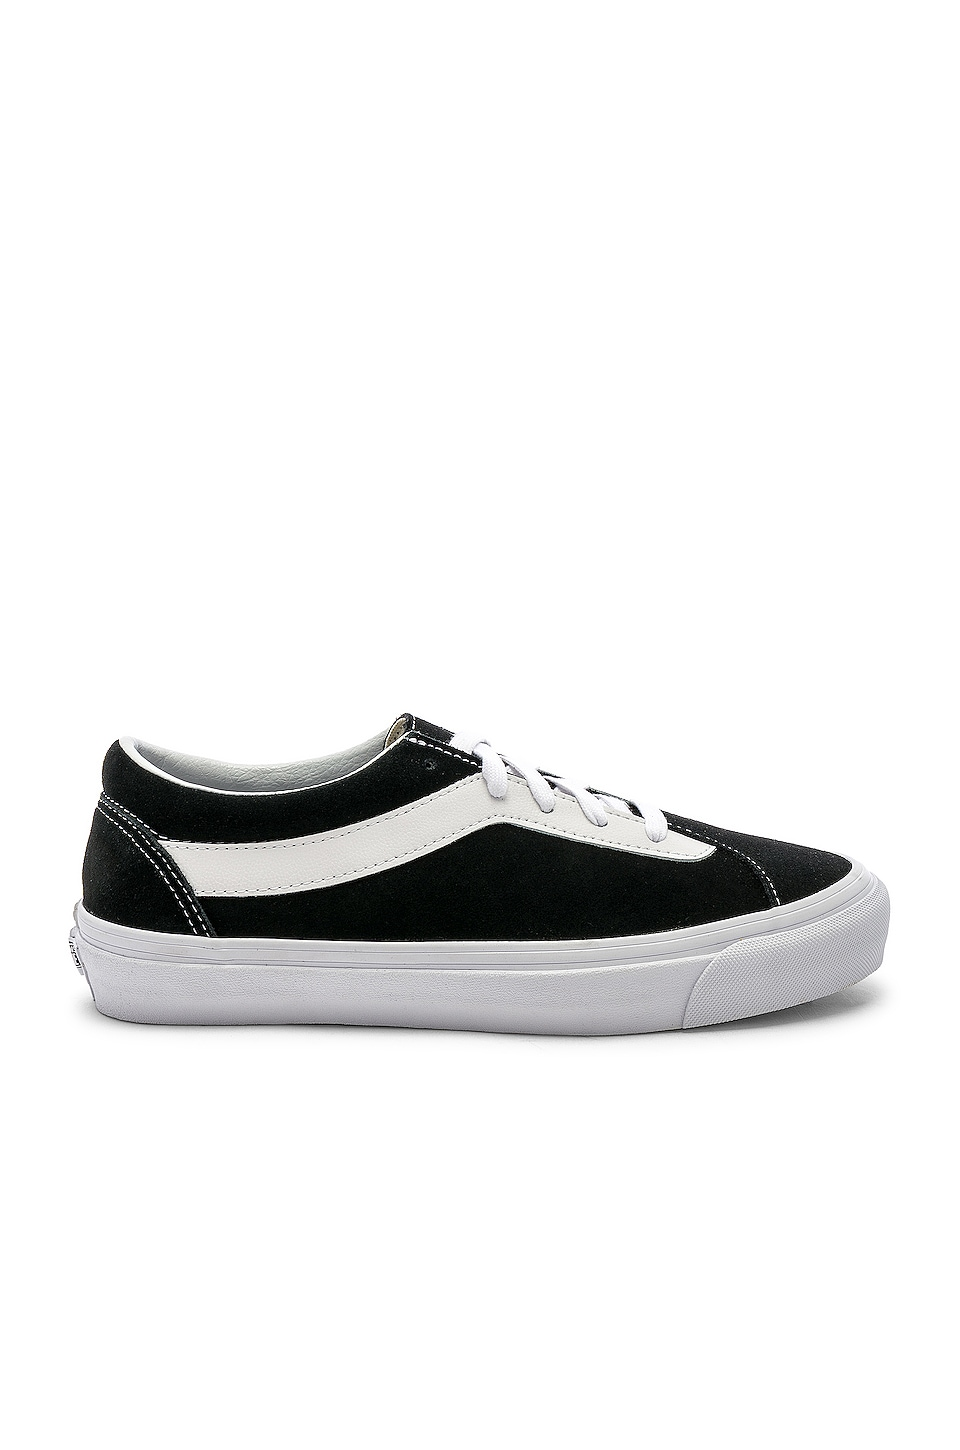 Vans Bold Ni in Black & True White